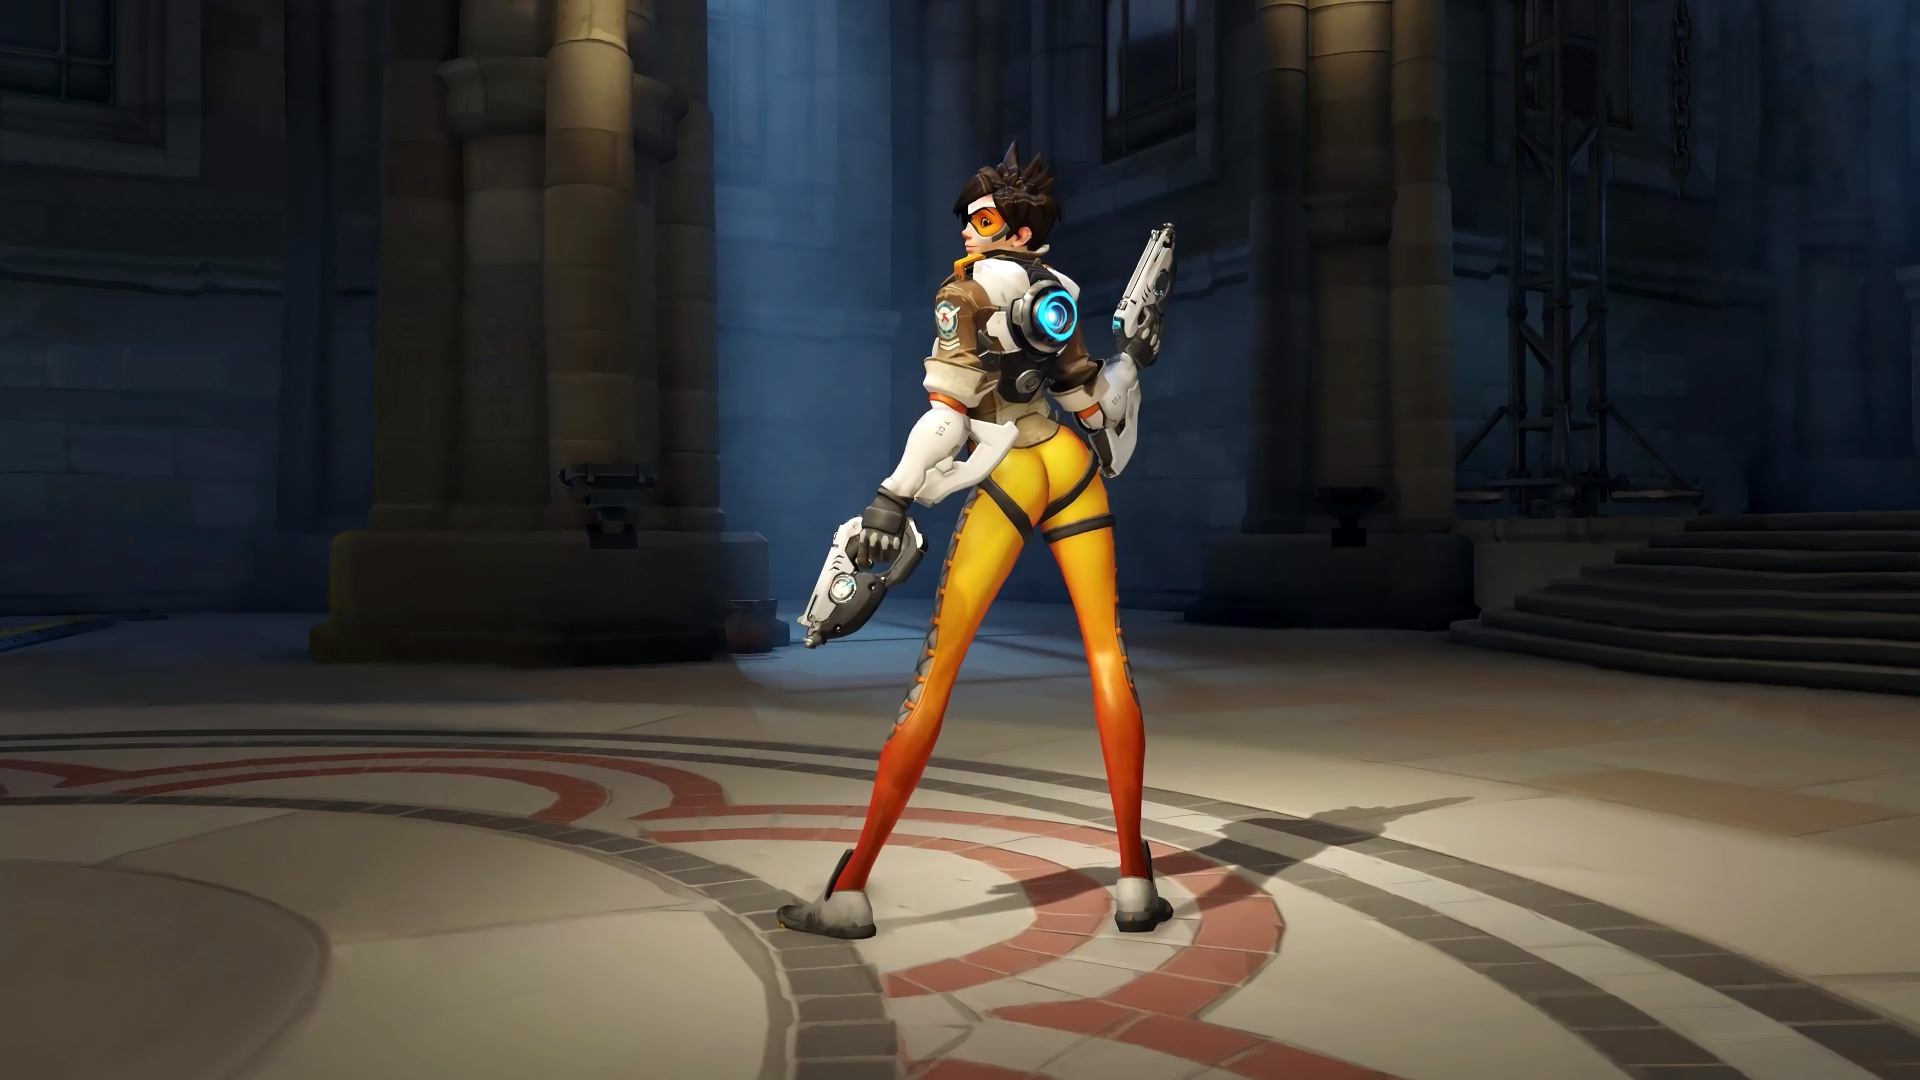 Overwatch 4K 1080p and 720p Ultra HD Wallpapers Gaming So Far 1920x1080